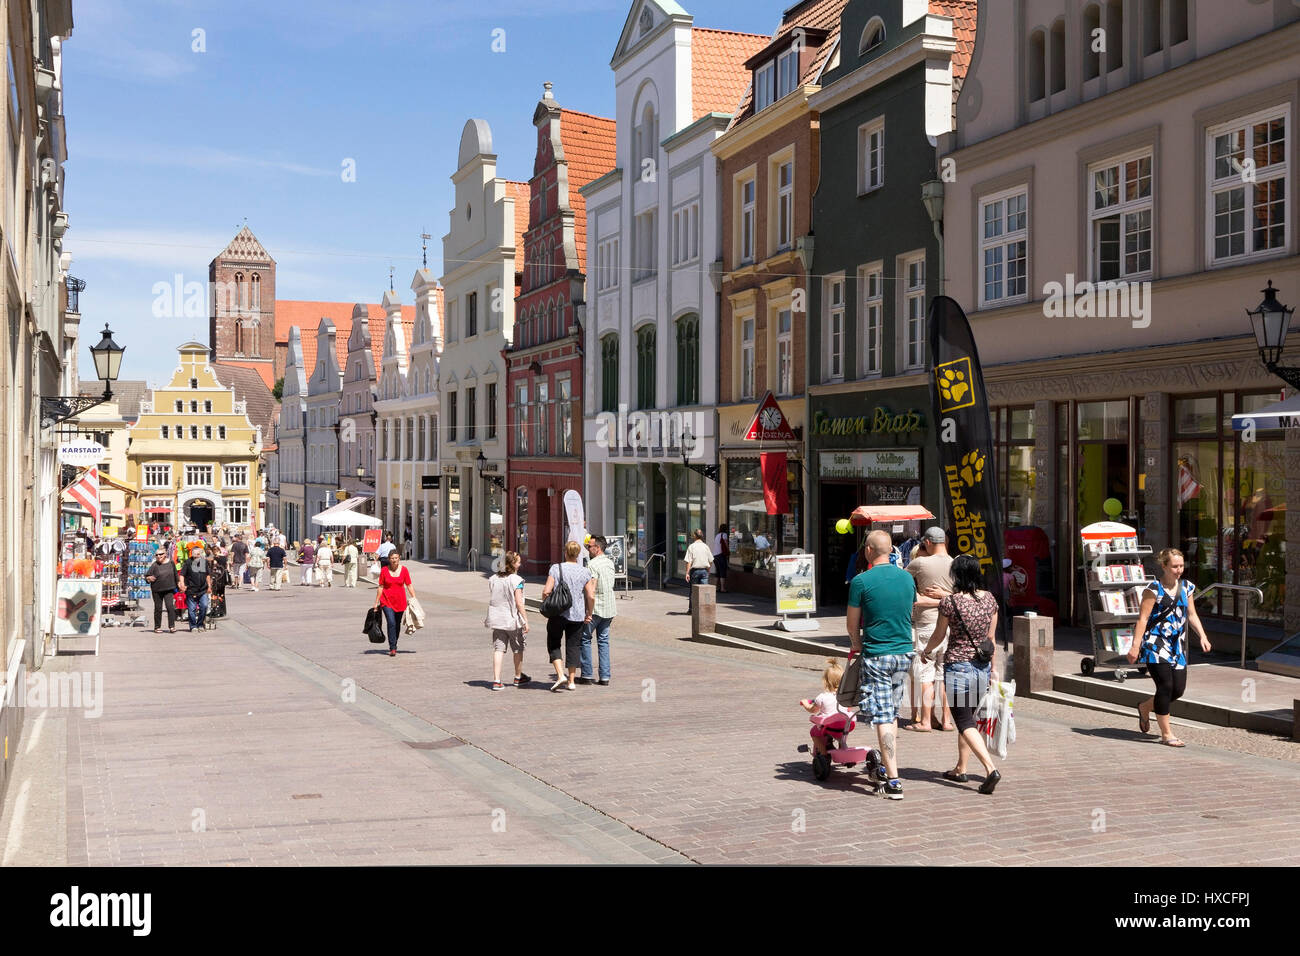 Business houses in a shopping street in the Old Town of Wismar, Commercial buildings in a shopping street in the - Stock Image